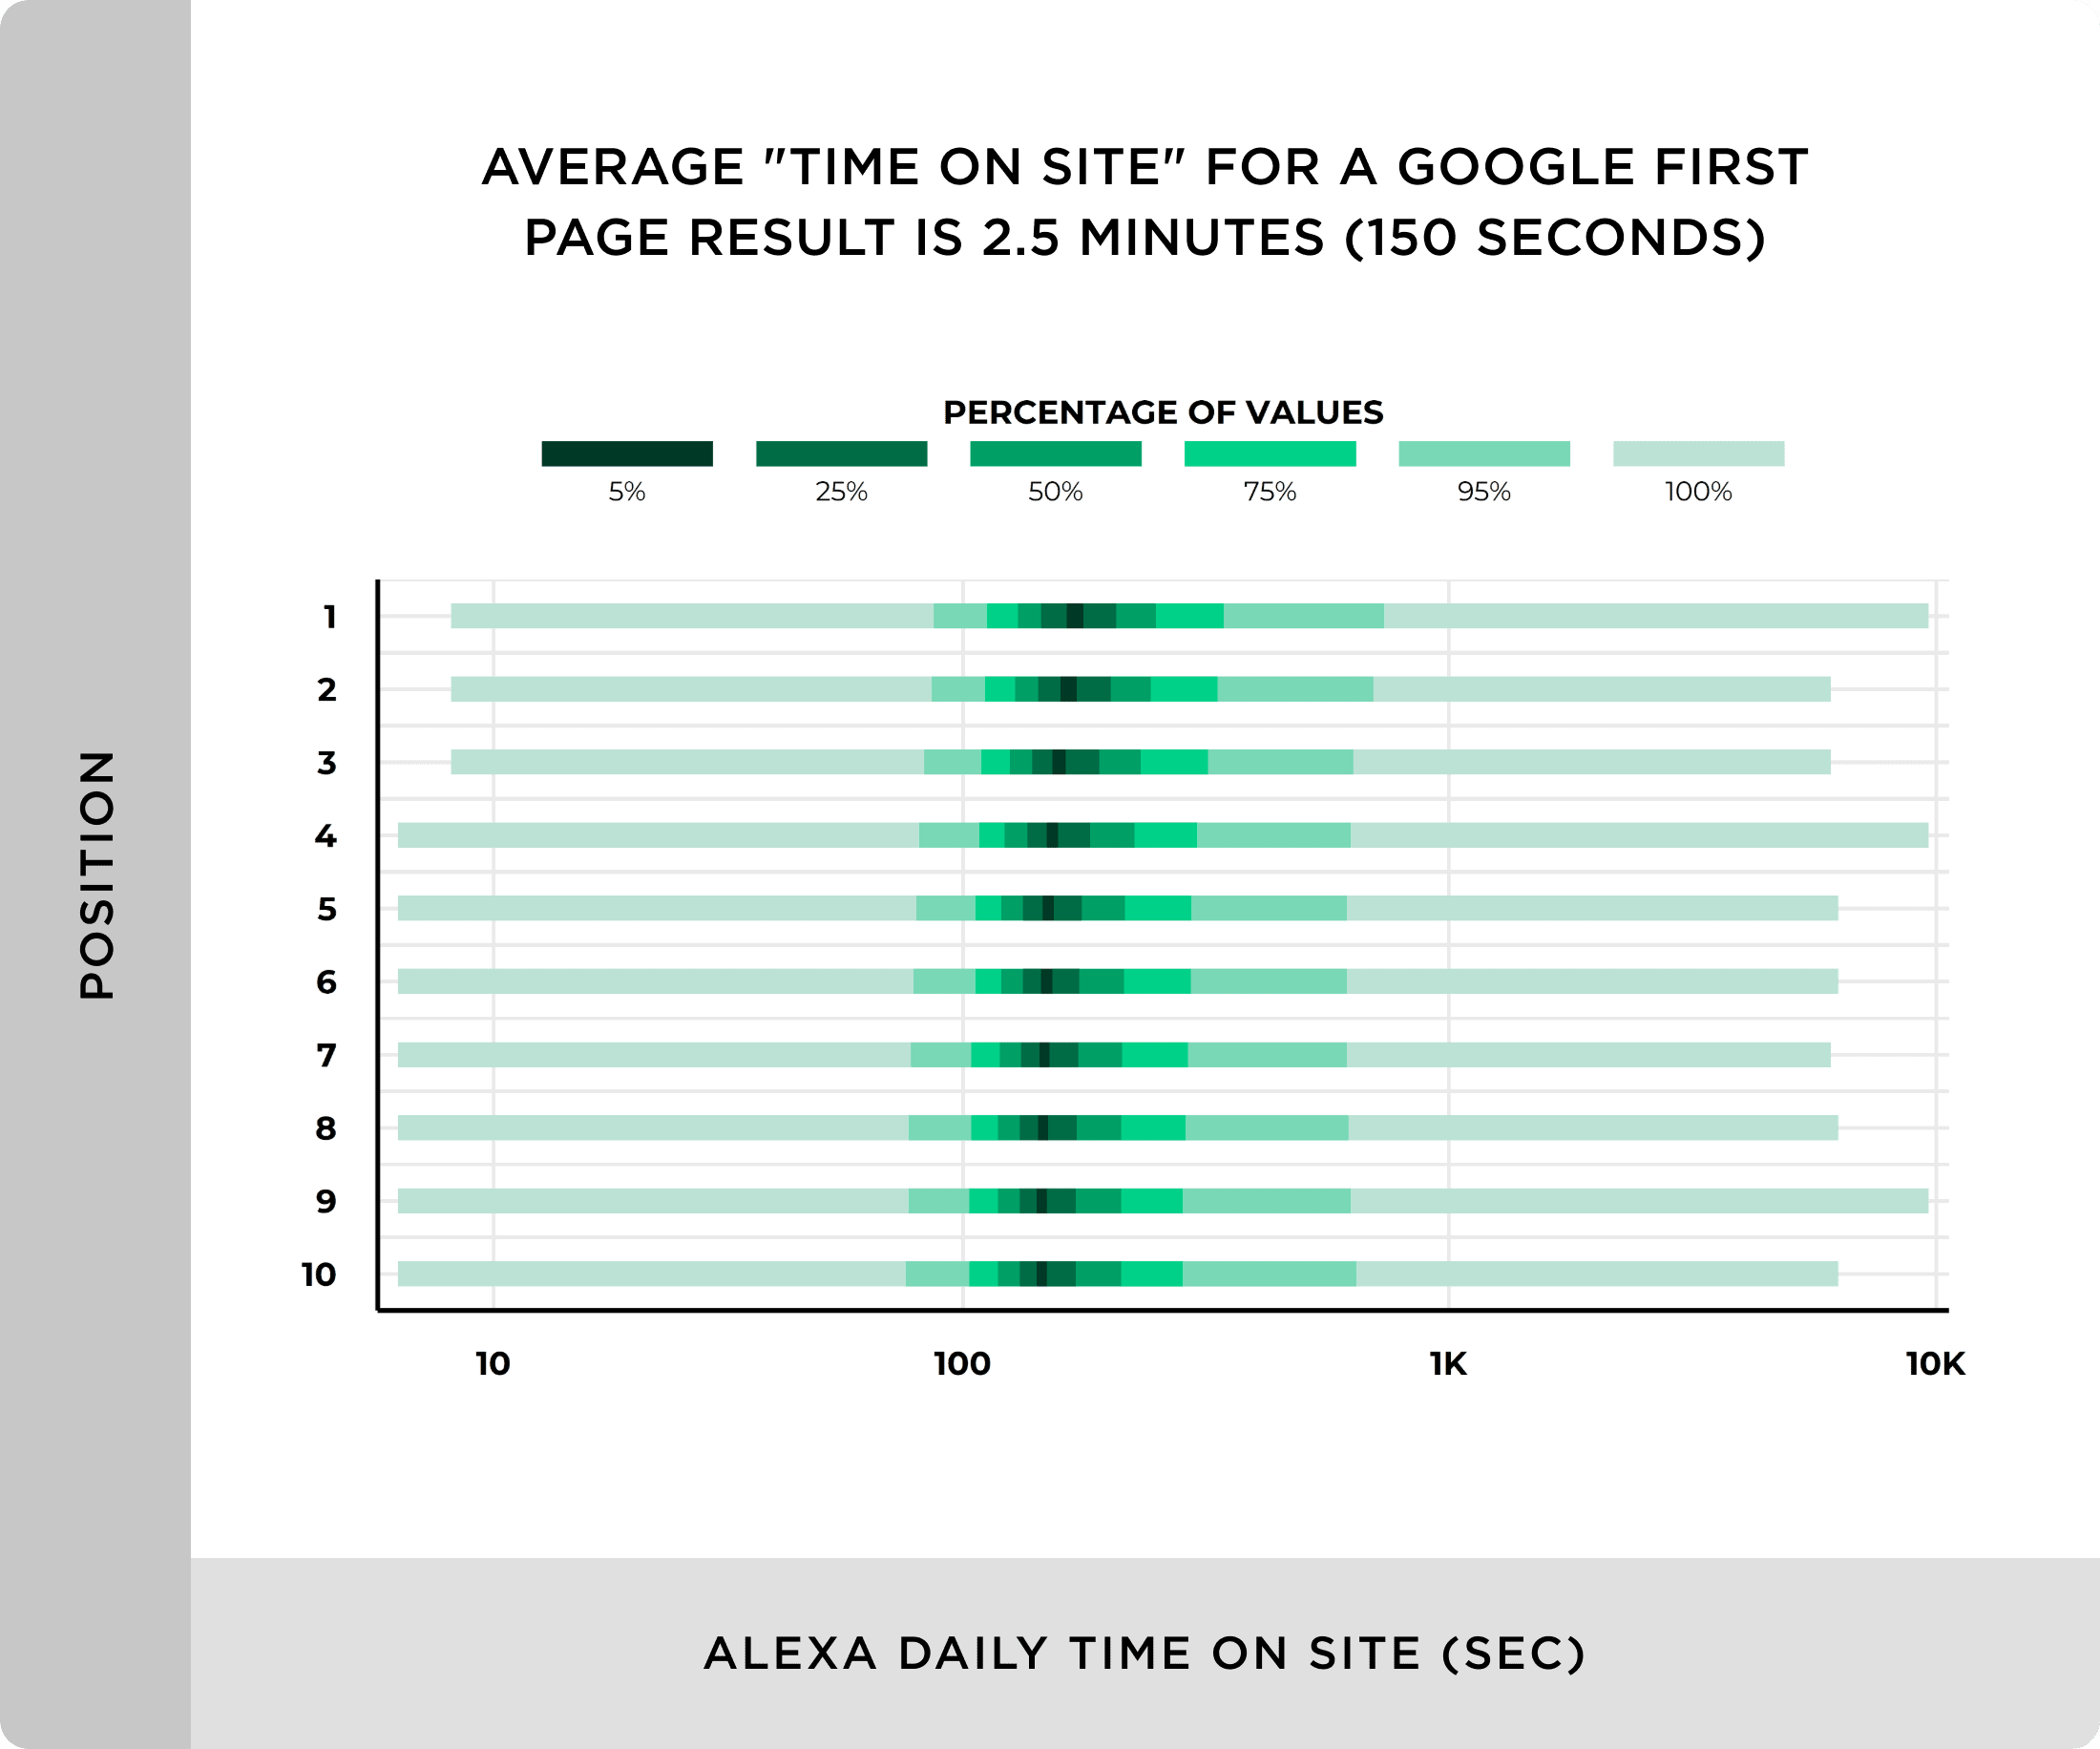 Average time on site for a Google first page result is 150 seconds